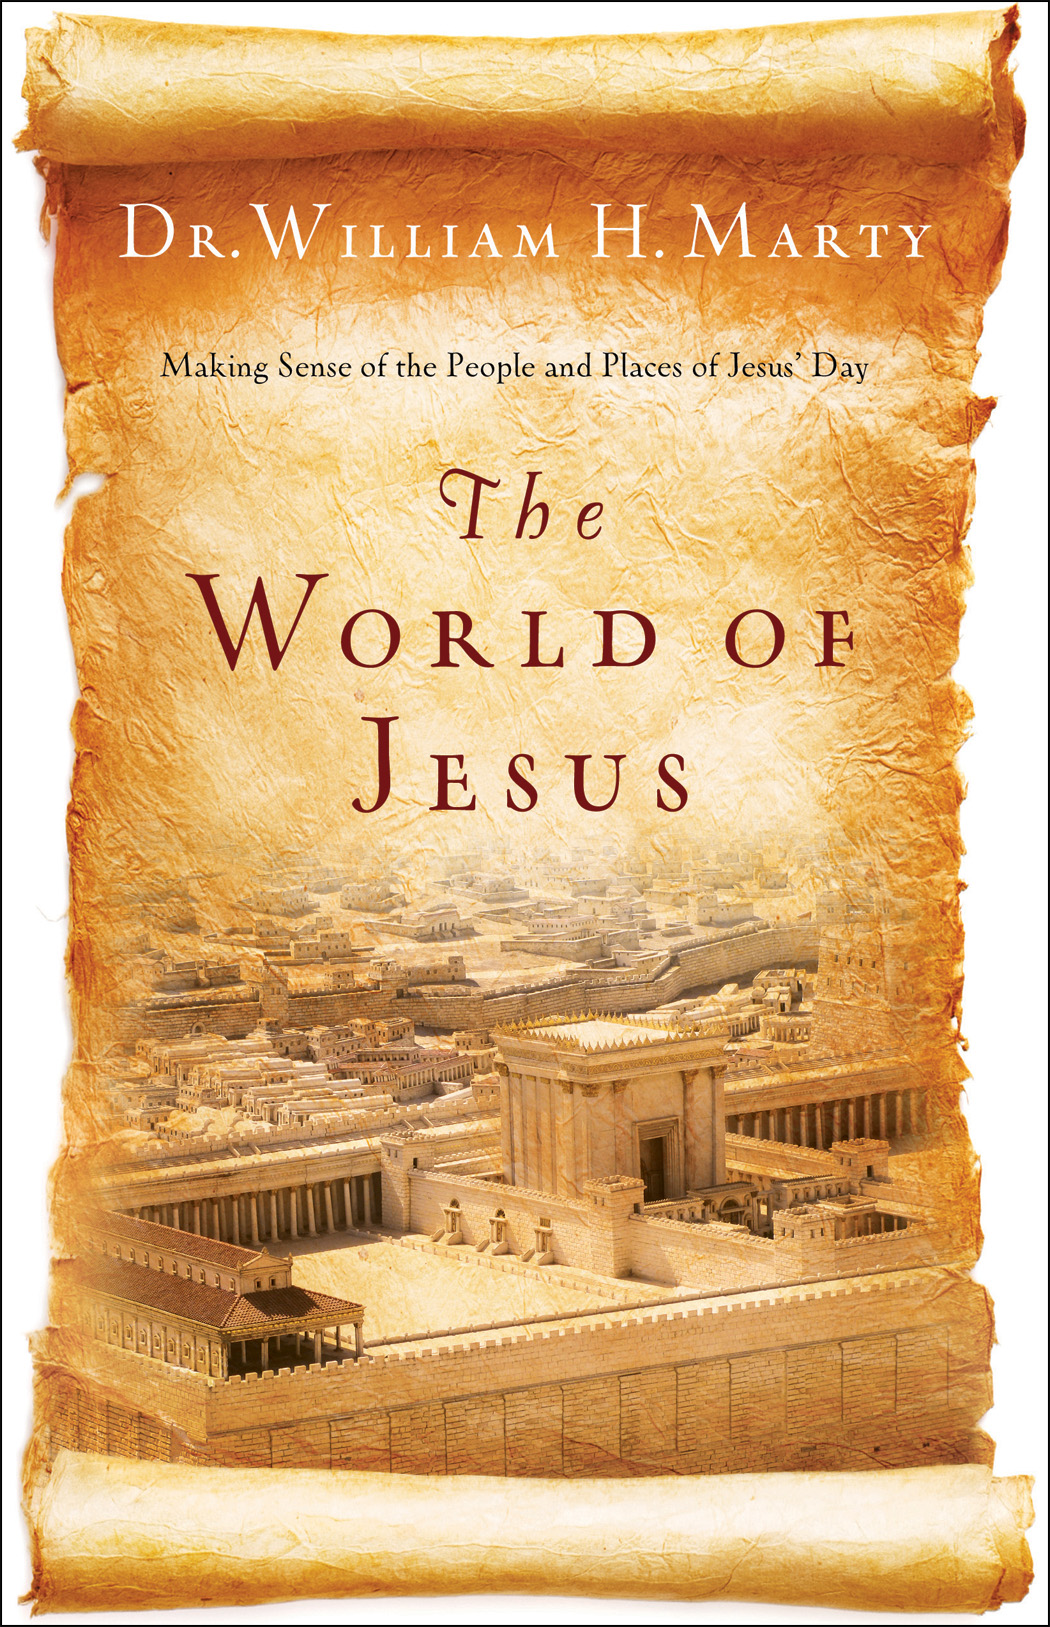 World of Jesus, The